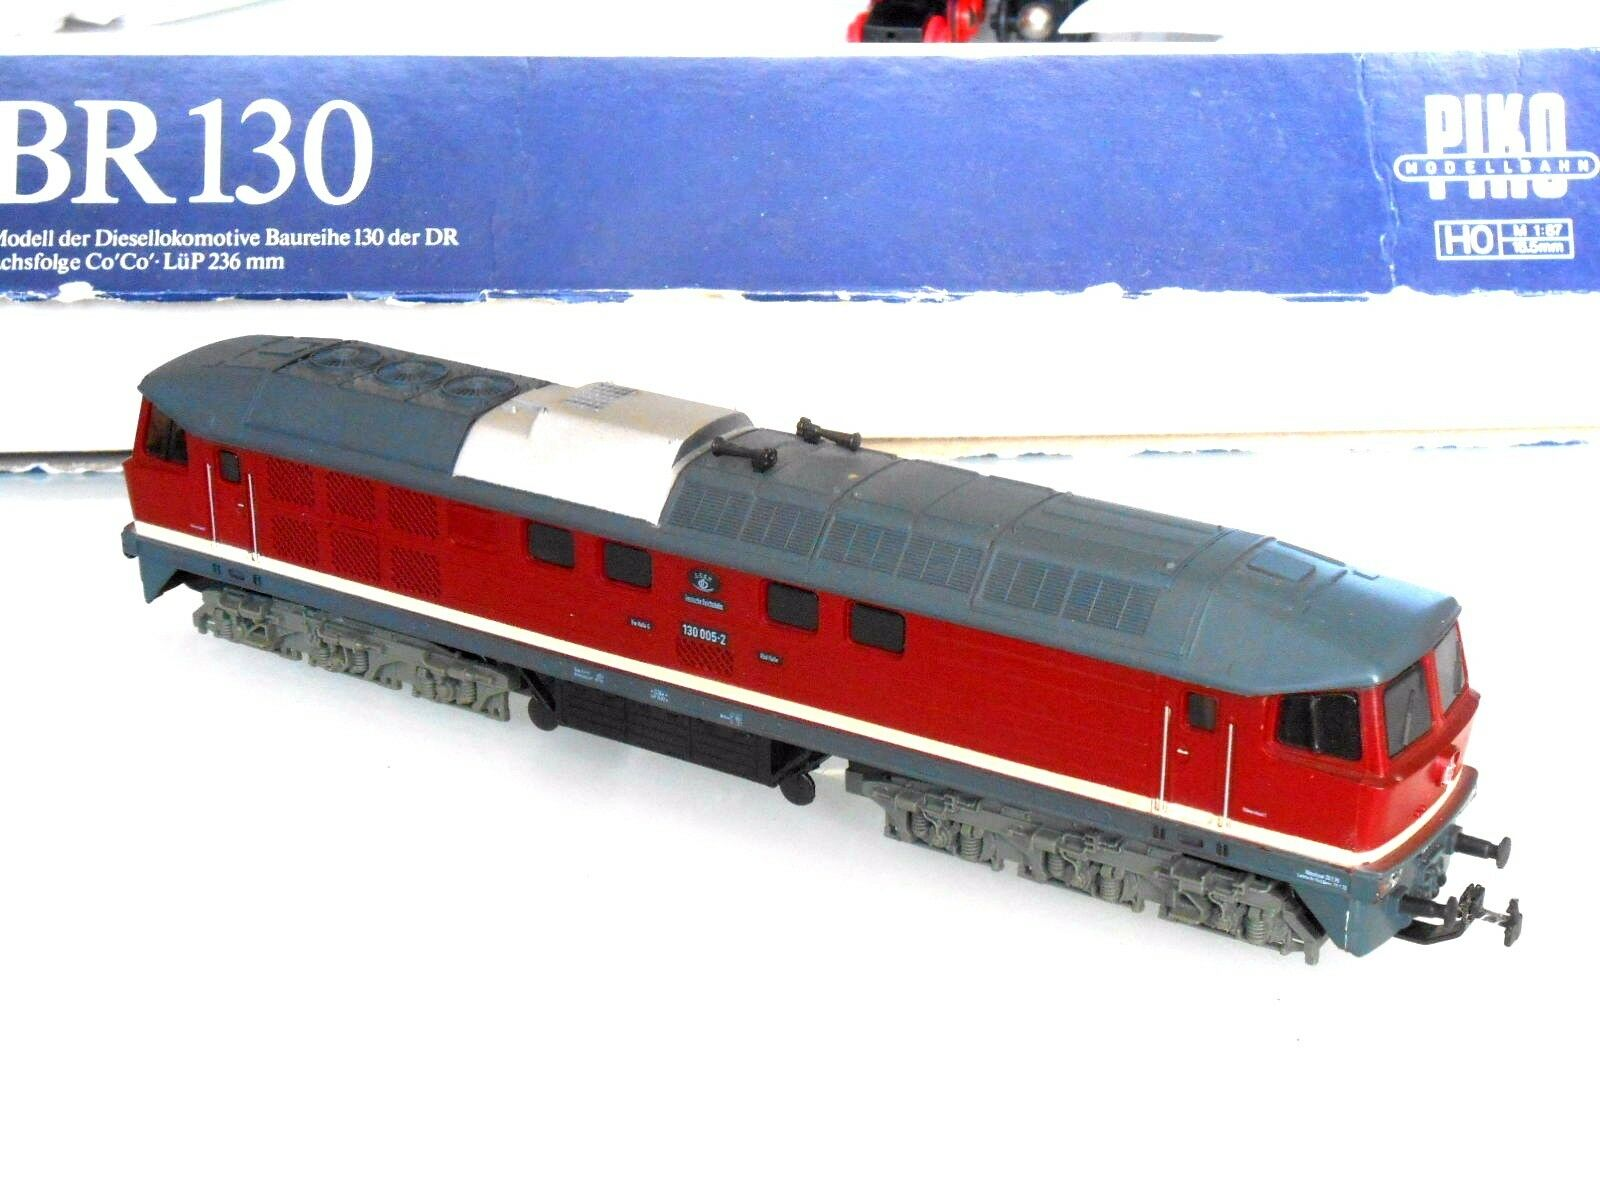 Piko h0 Diesellok BR 130 130005 -2 in Red Mint Condition Boxed